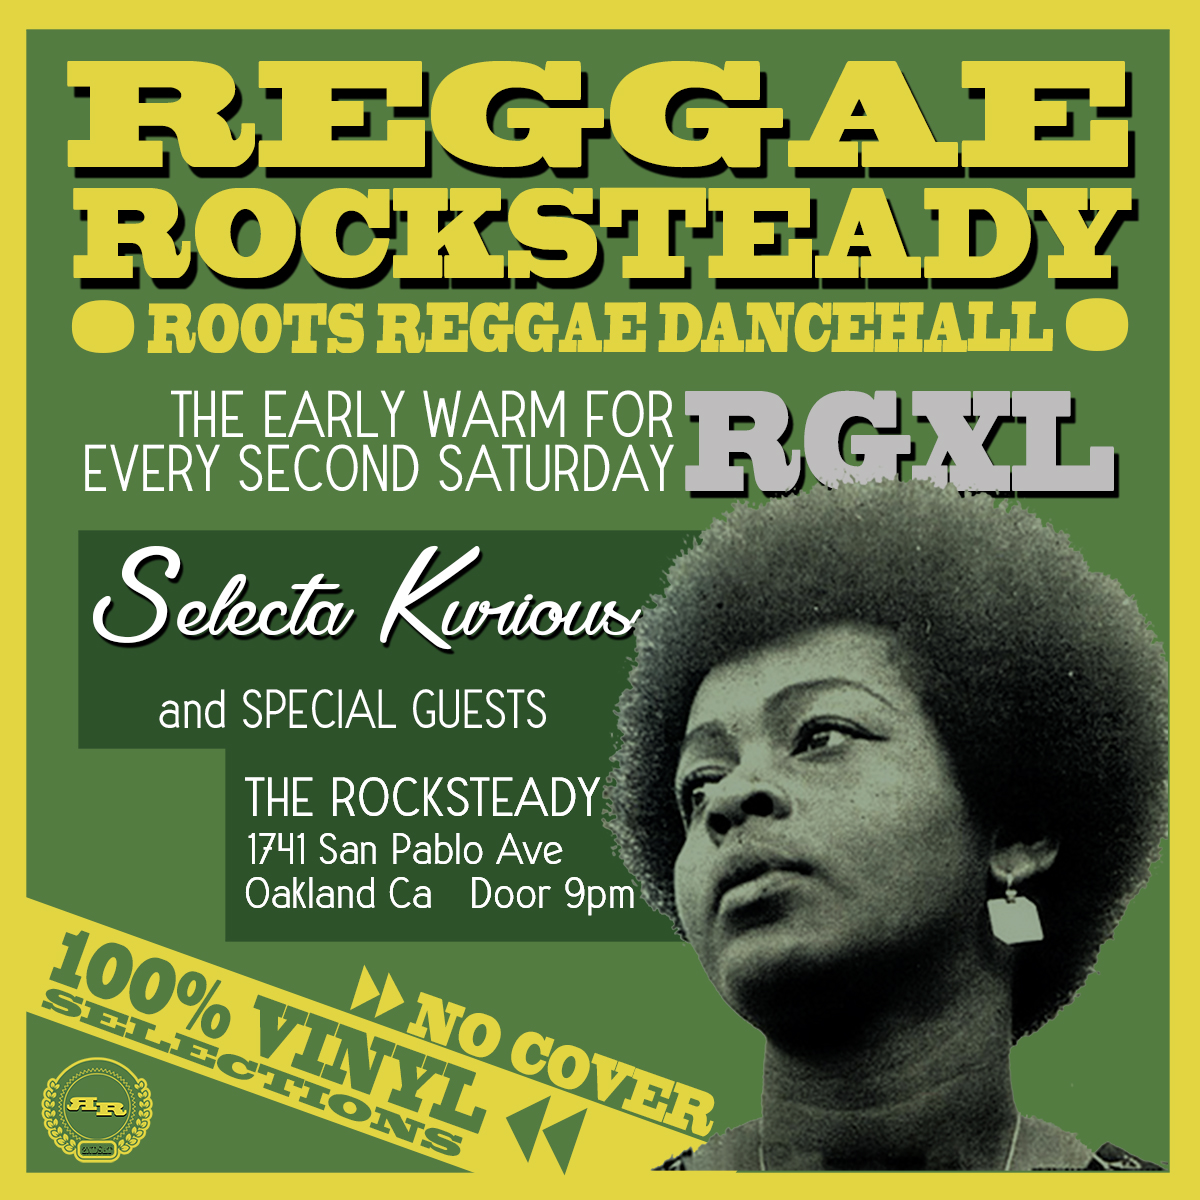 Reggae Rocksteady 2nd Saturdays